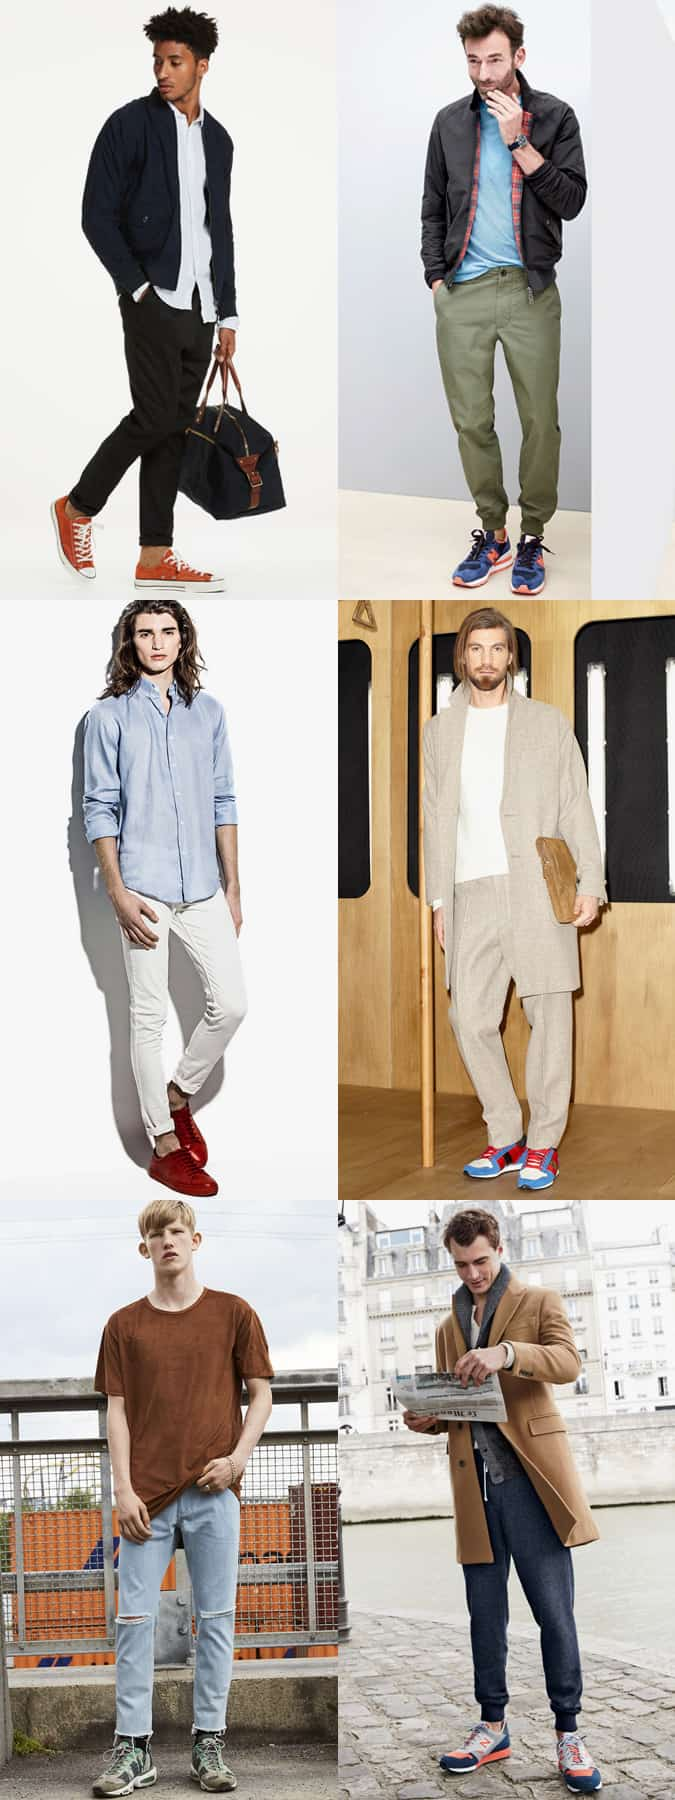 60594cfc2ef The right trousers and jeans to wear with bold colourful sneakers